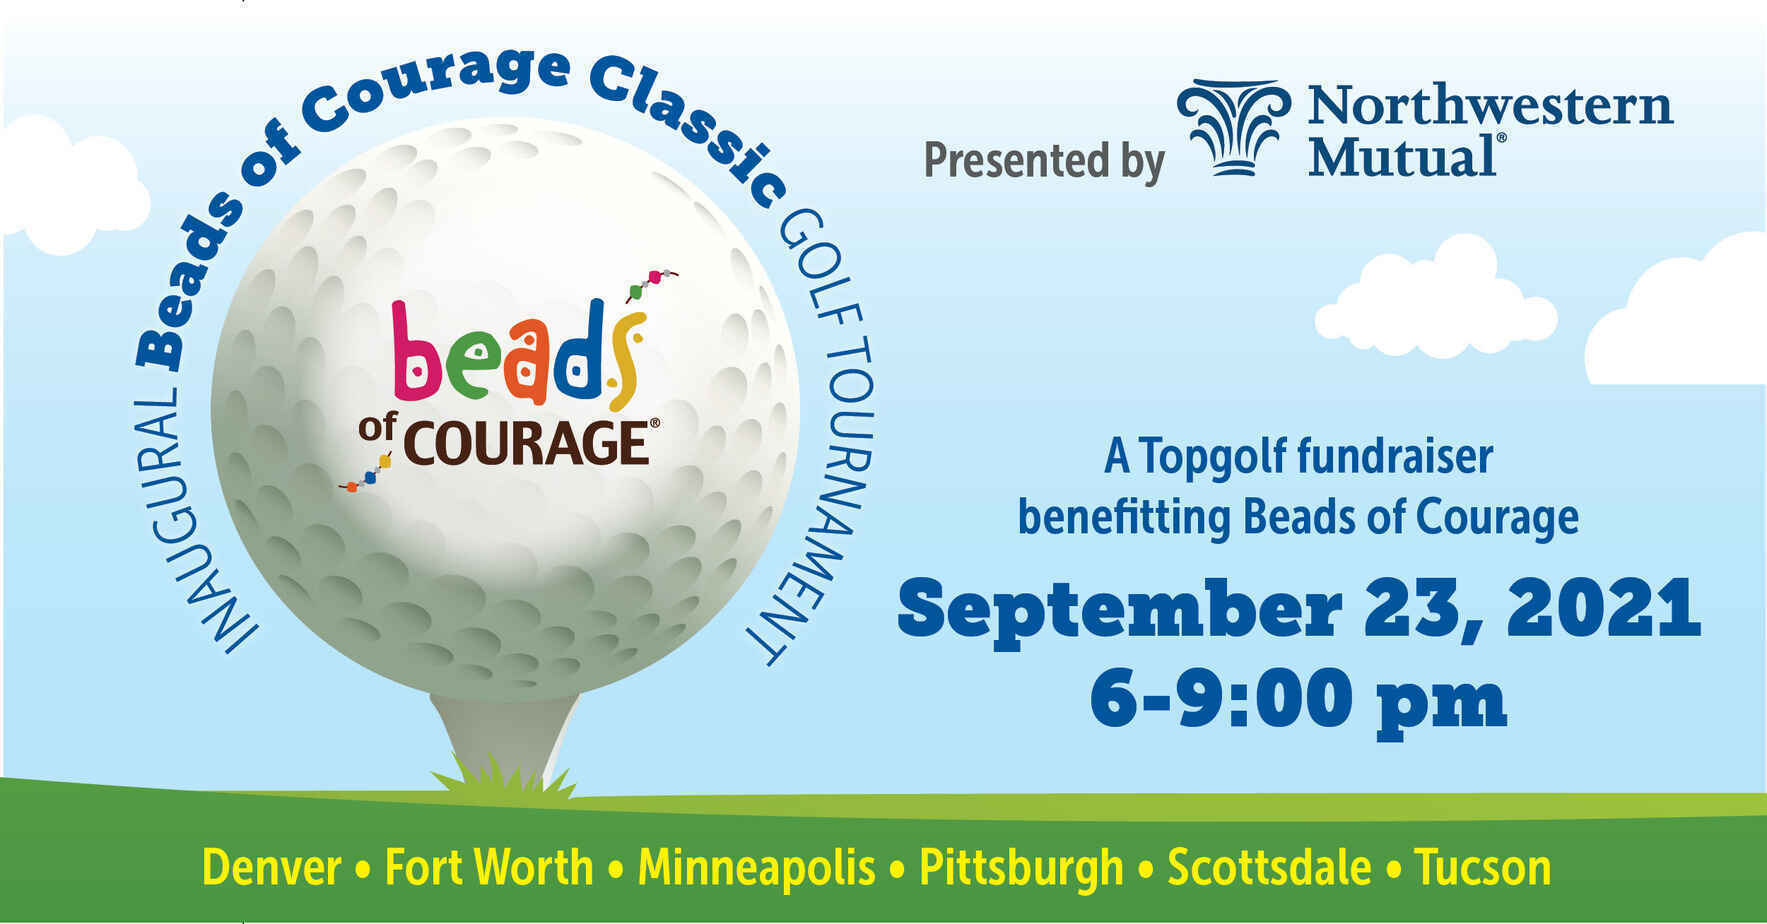 2021 Minneapolis Beads of Courage Classic Golf Tournament image